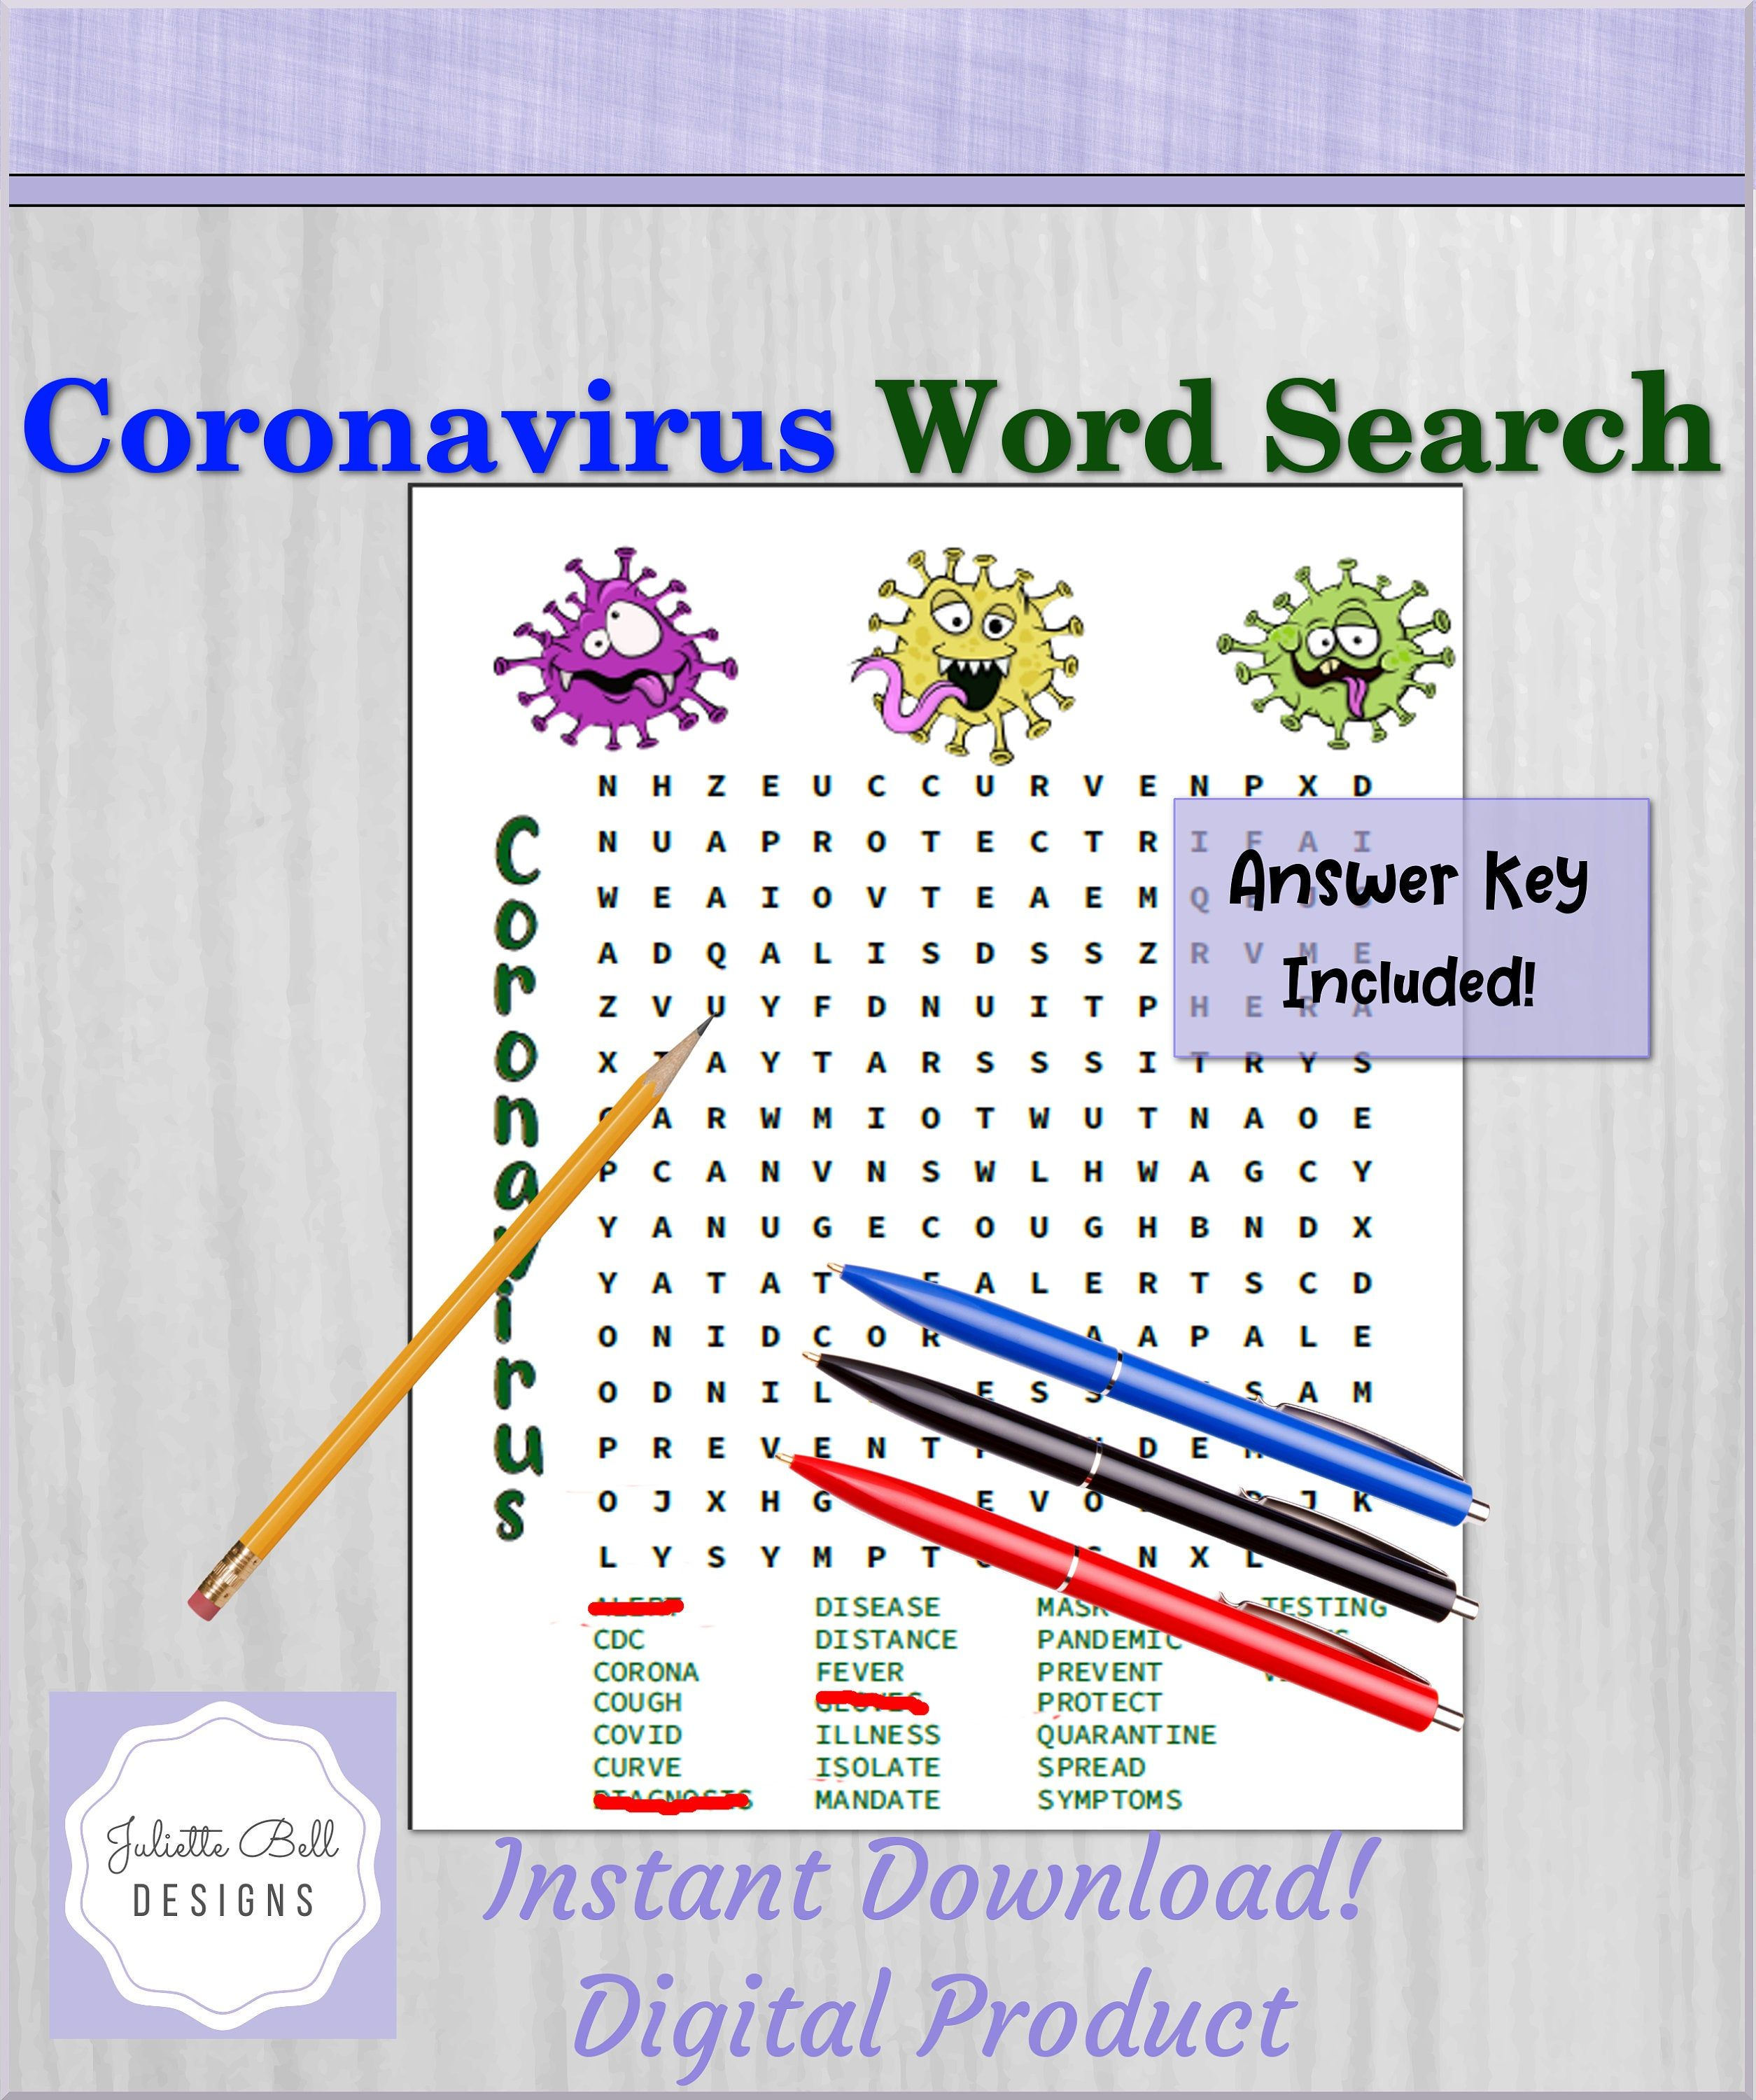 INSTANT DOWNLOAD Word Search Puzzle Game Coronavirus   Etsy